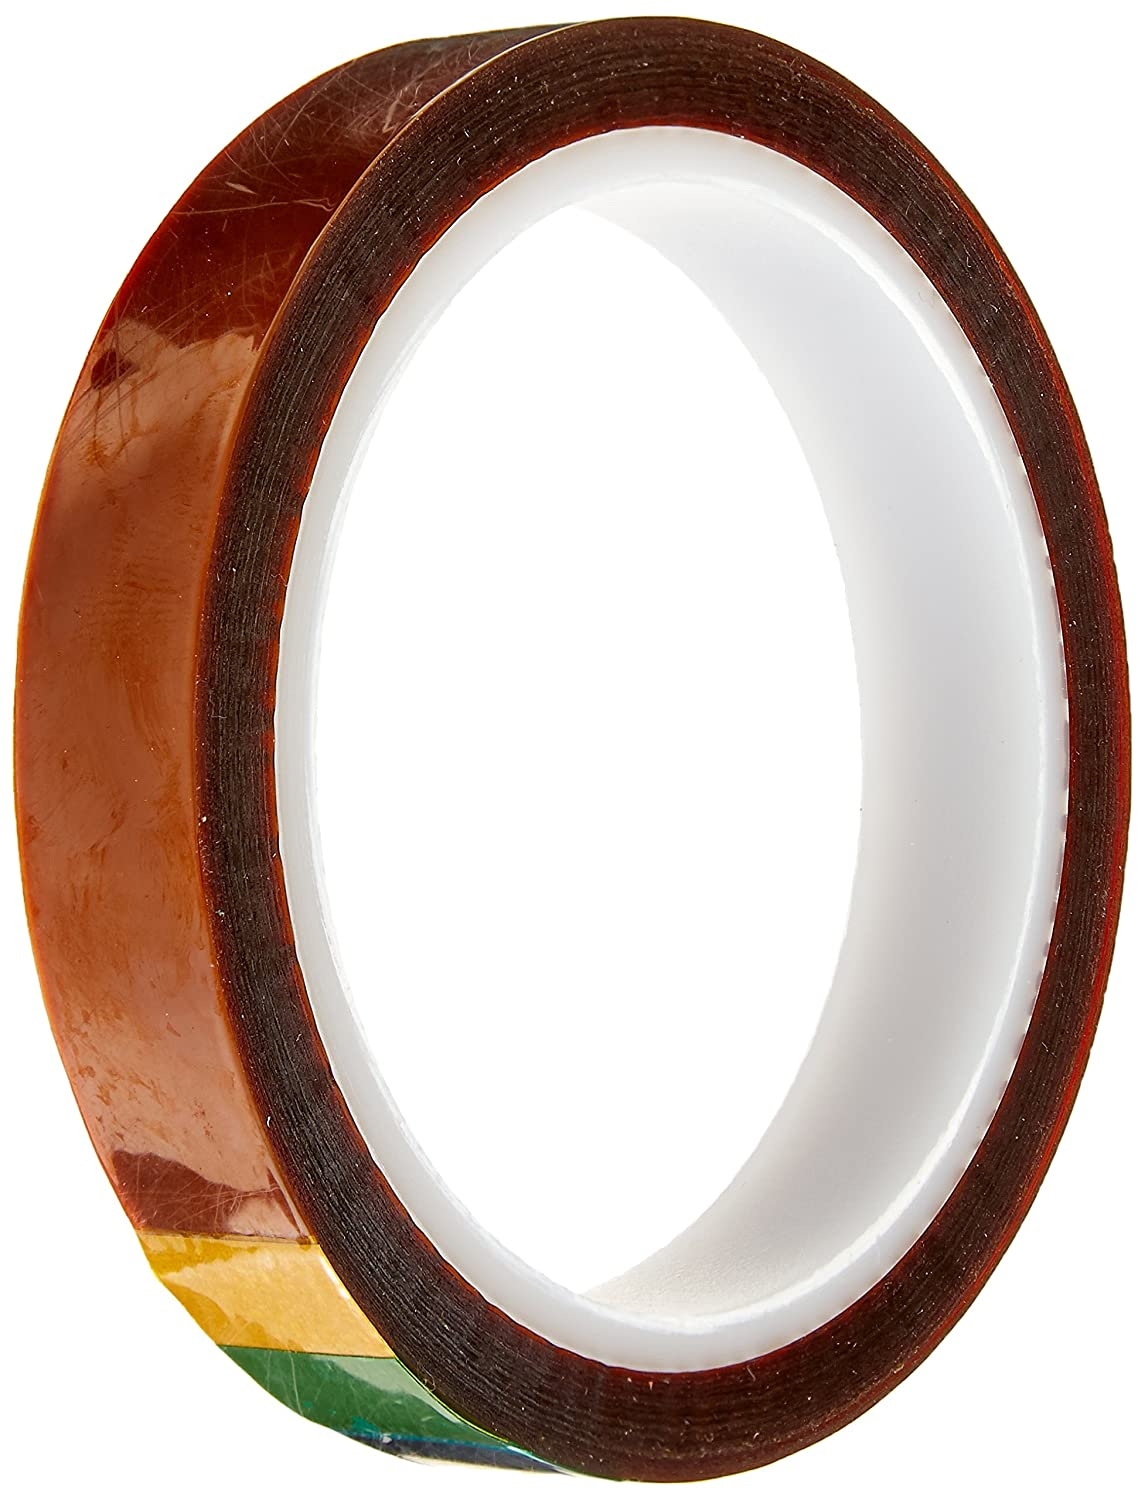 Kapton 18-1S Polyimide Tape with Silicone Adhesive 0.625 x 36 Yards